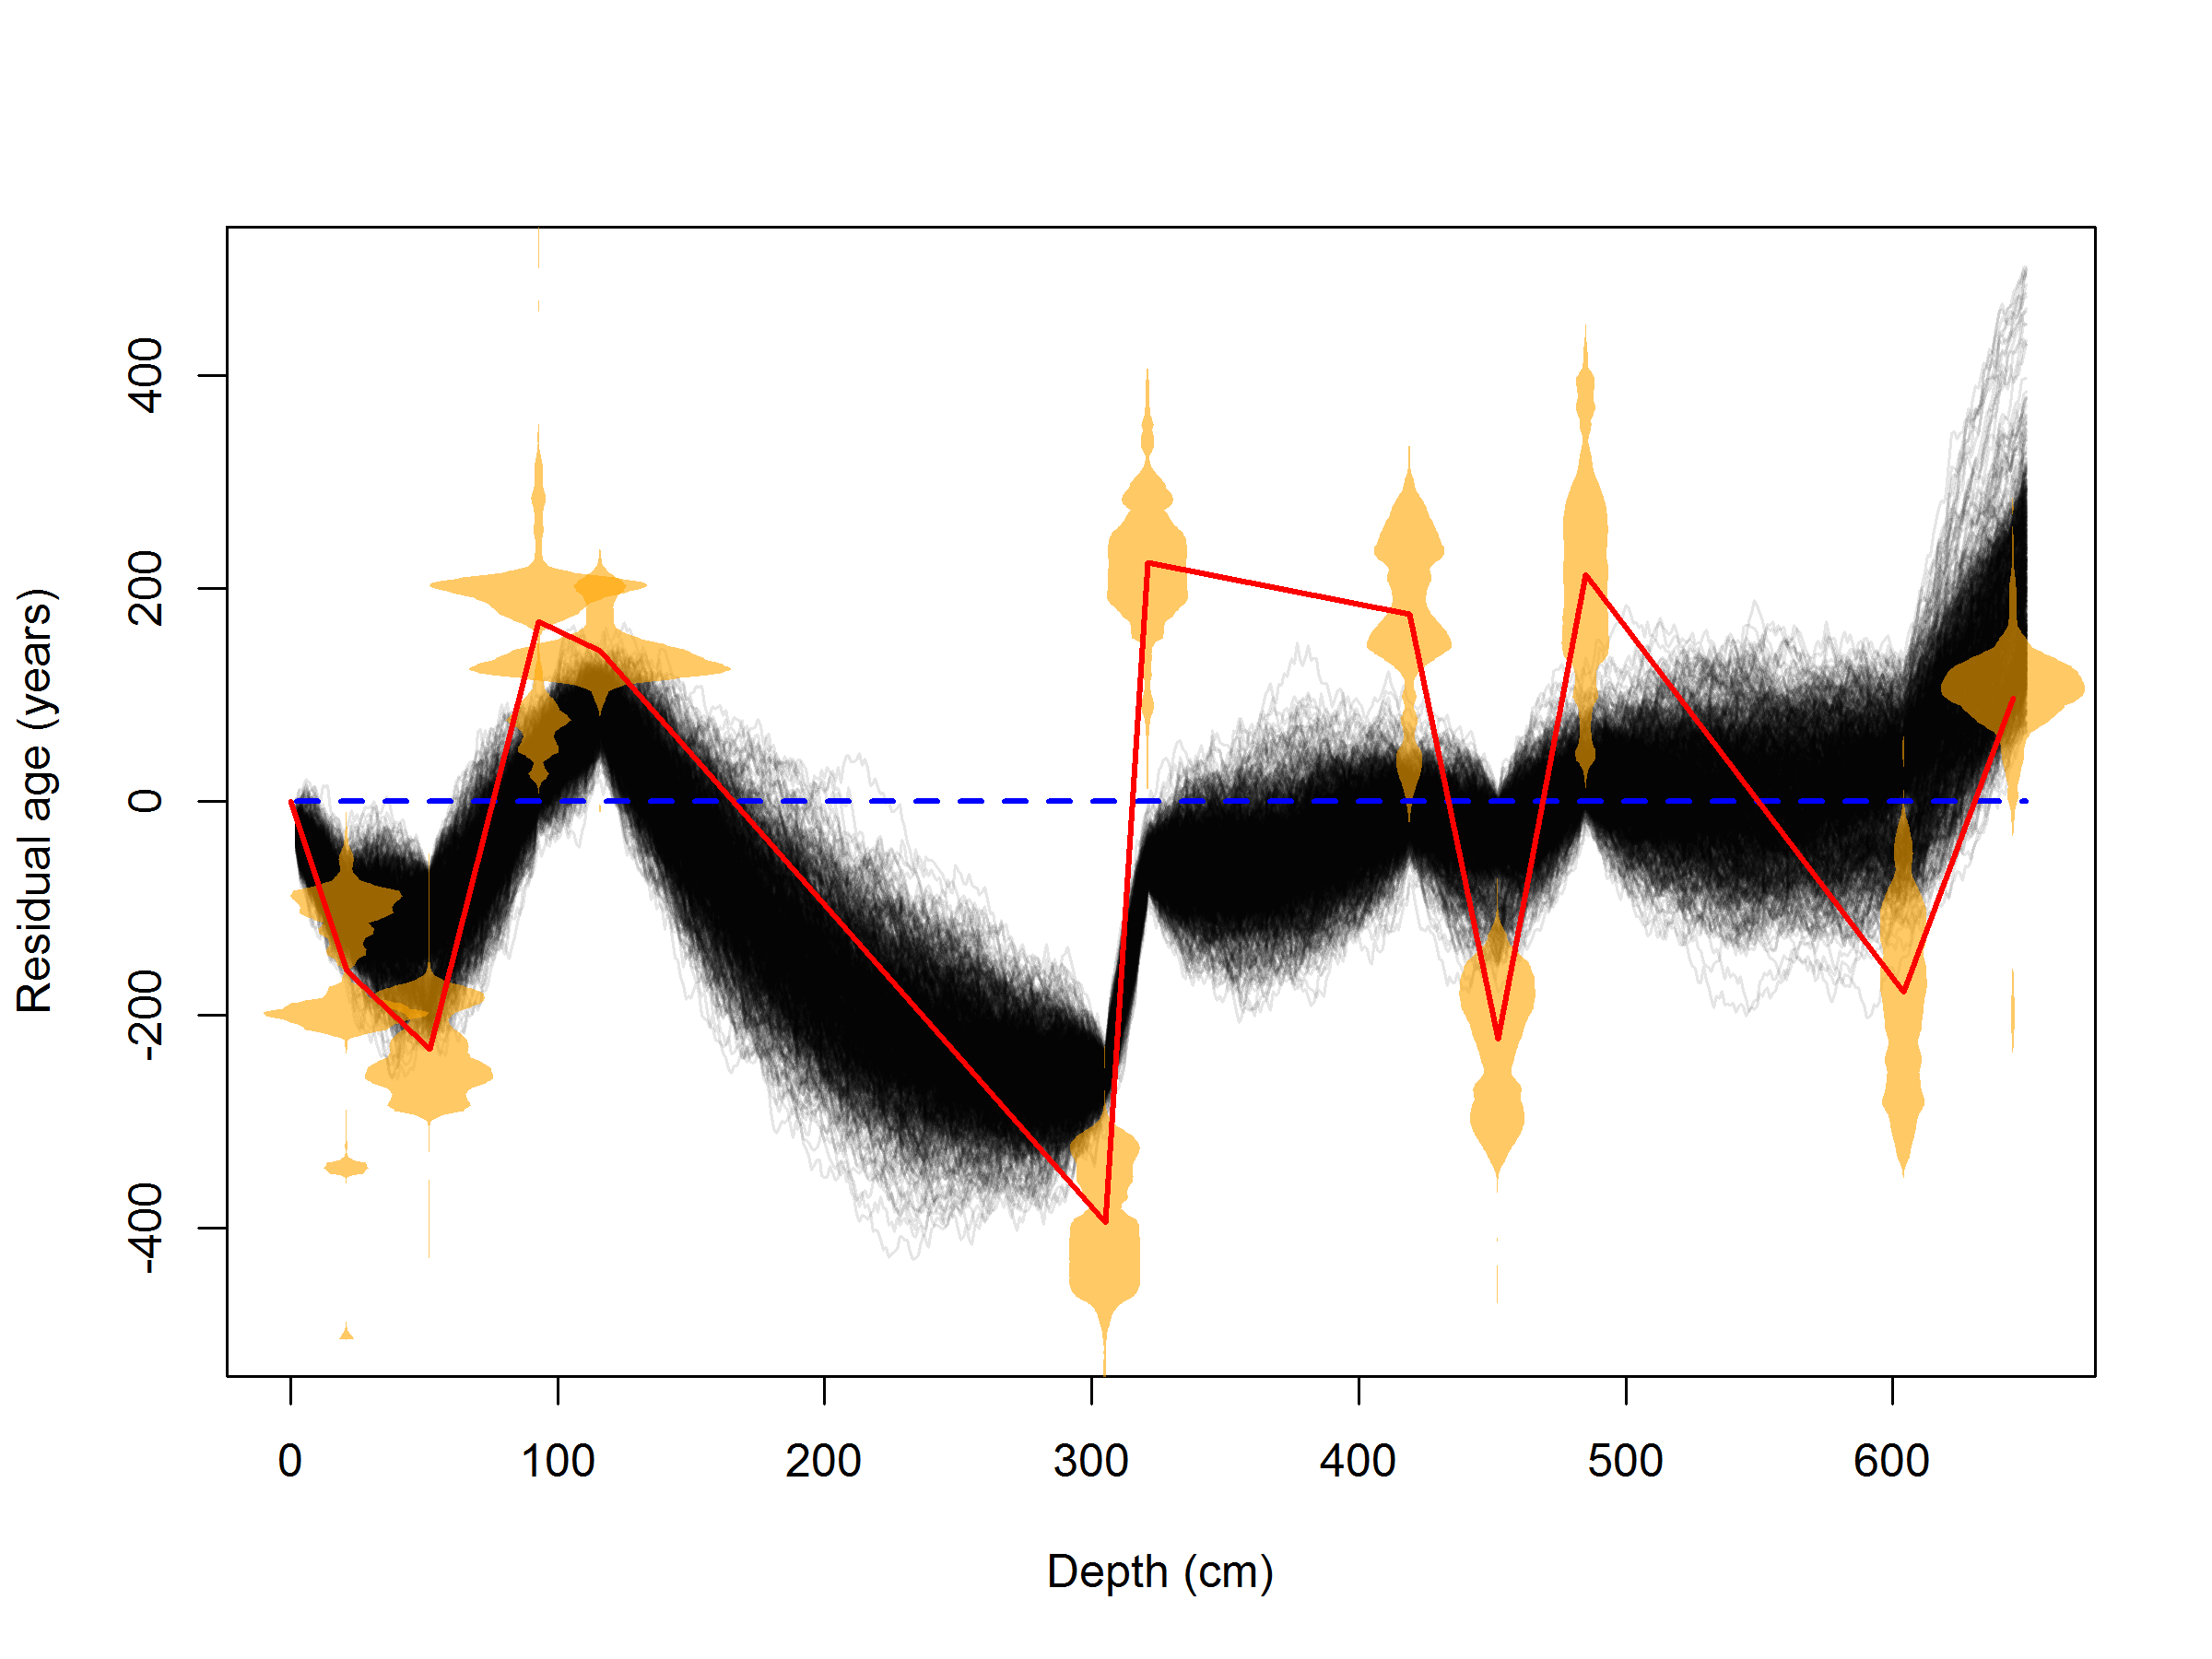 Age versus depth comparison plot